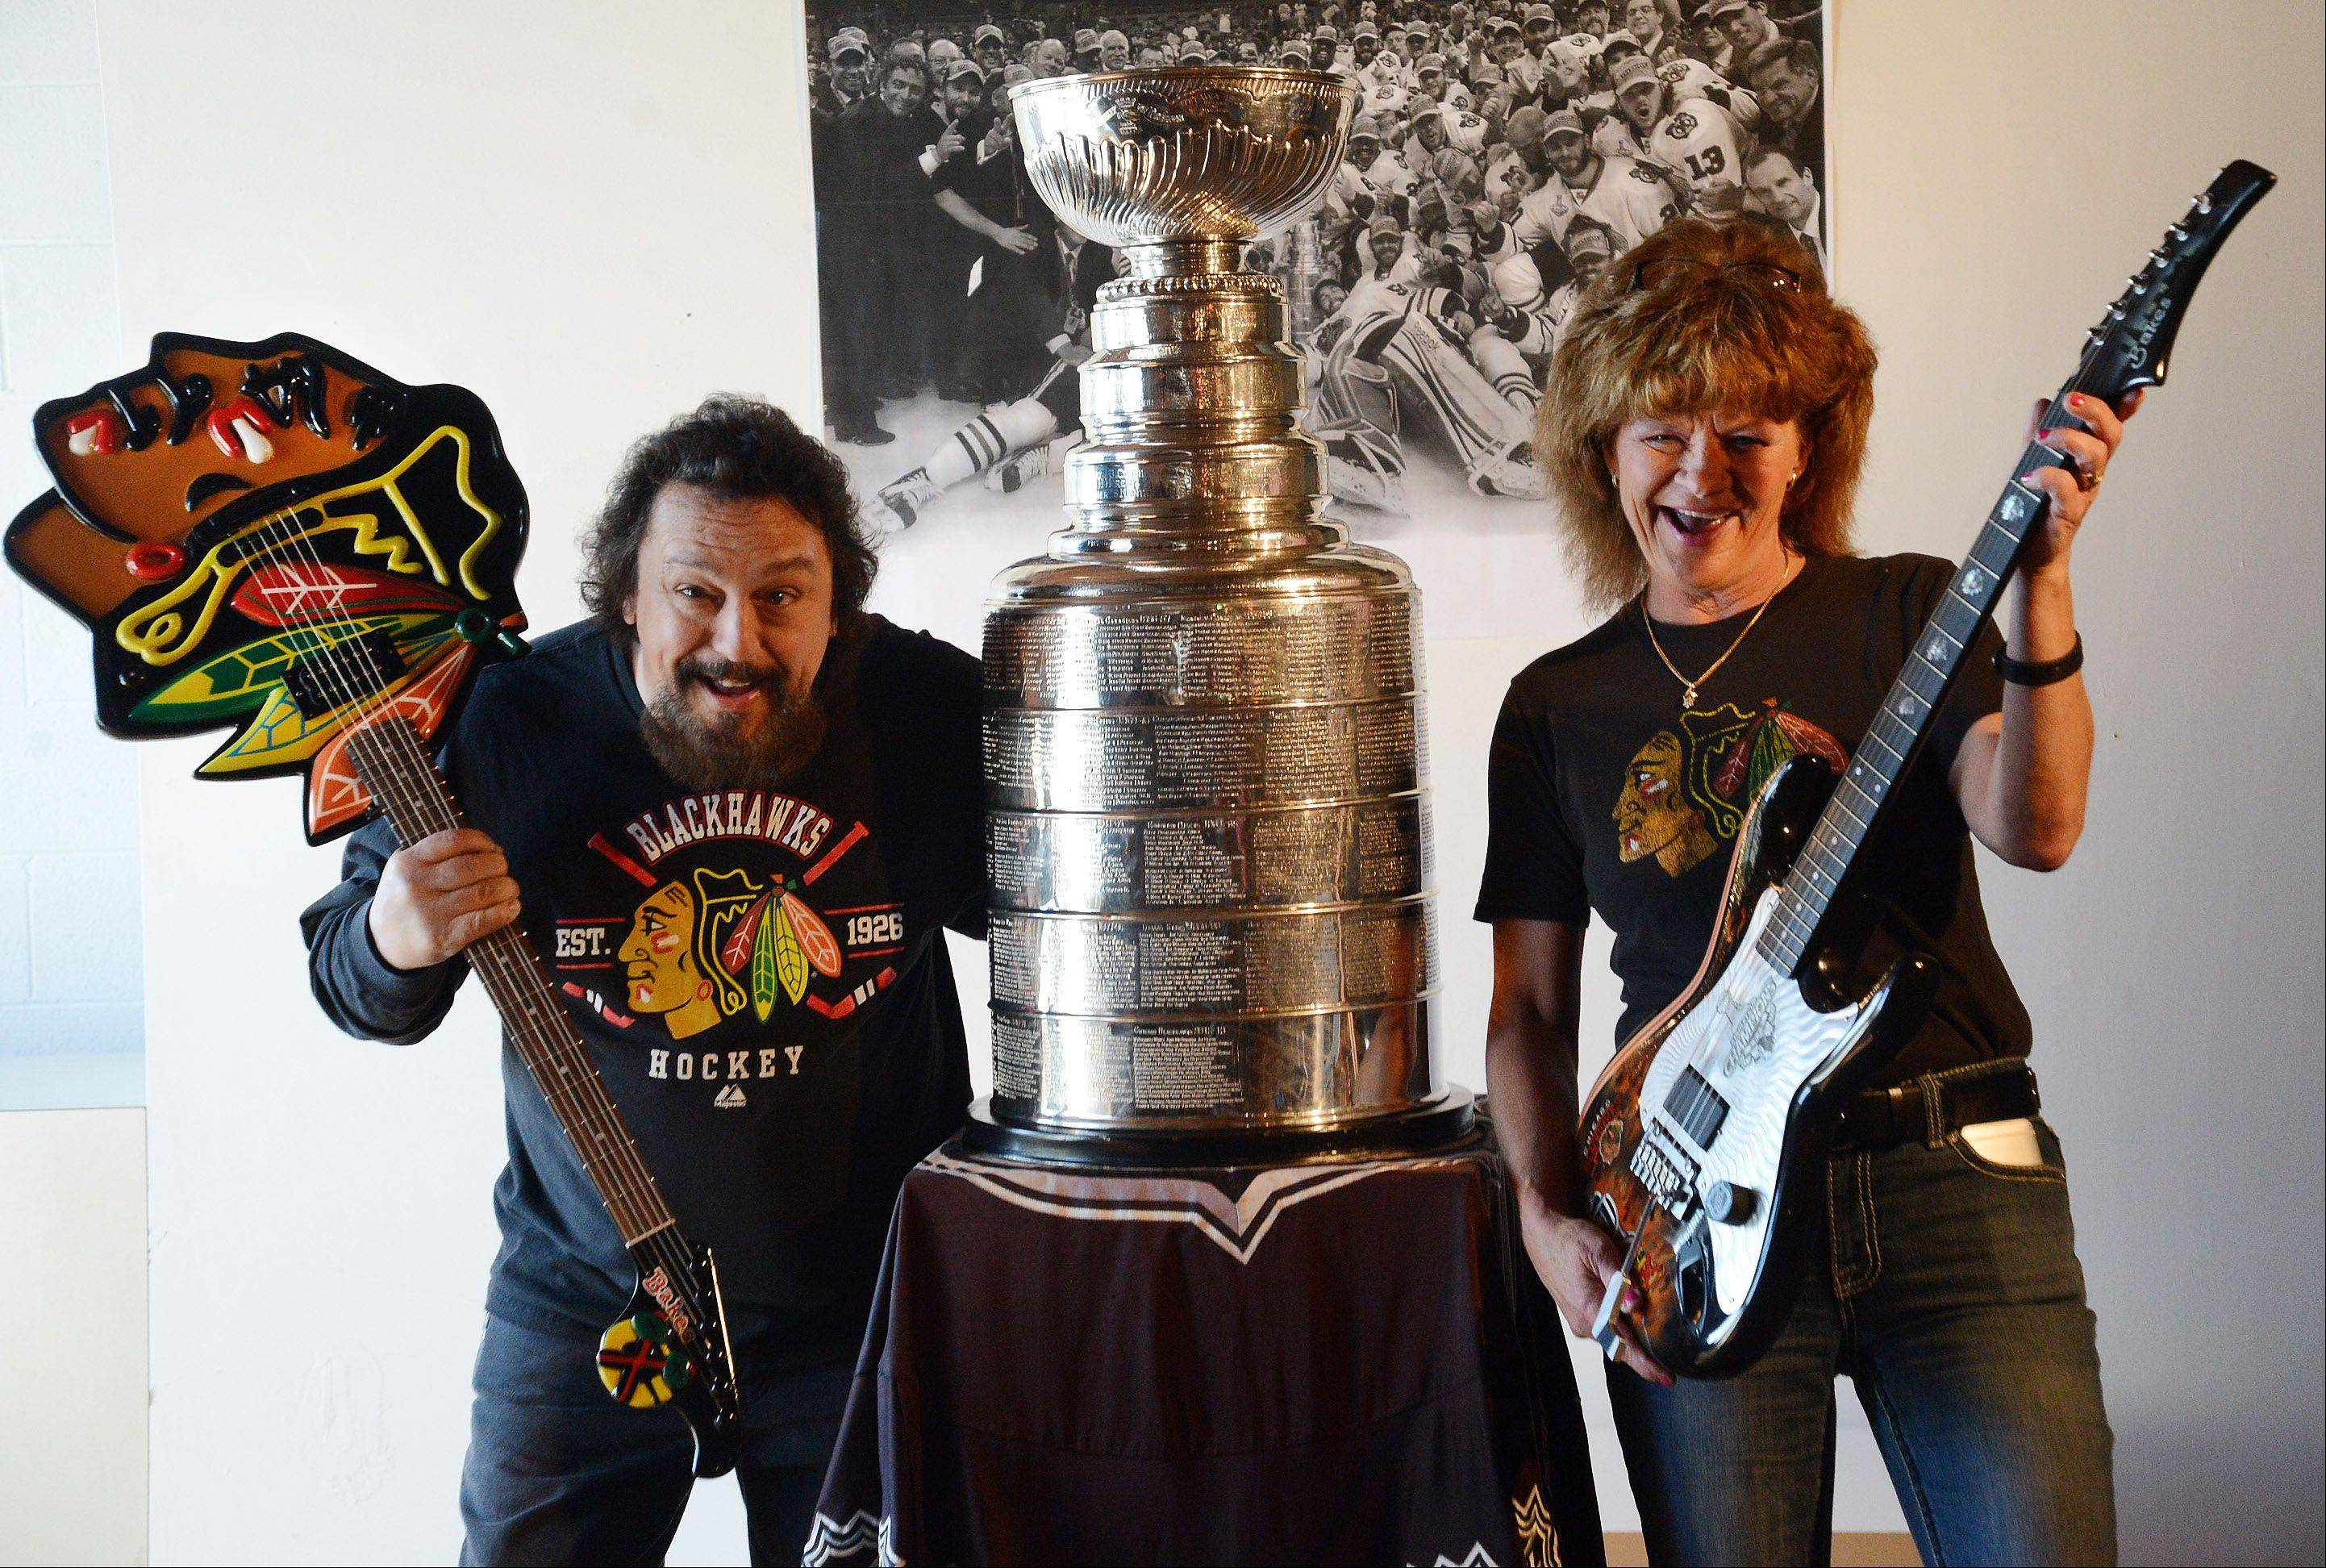 Rob and Beverly Bakes, of Bakes Guitars in Genoa, pose with their custom Blackhawks guitars with the Stanley Cup, which was on display at the Trickster Art Gallery in Schaumburg Saturday.